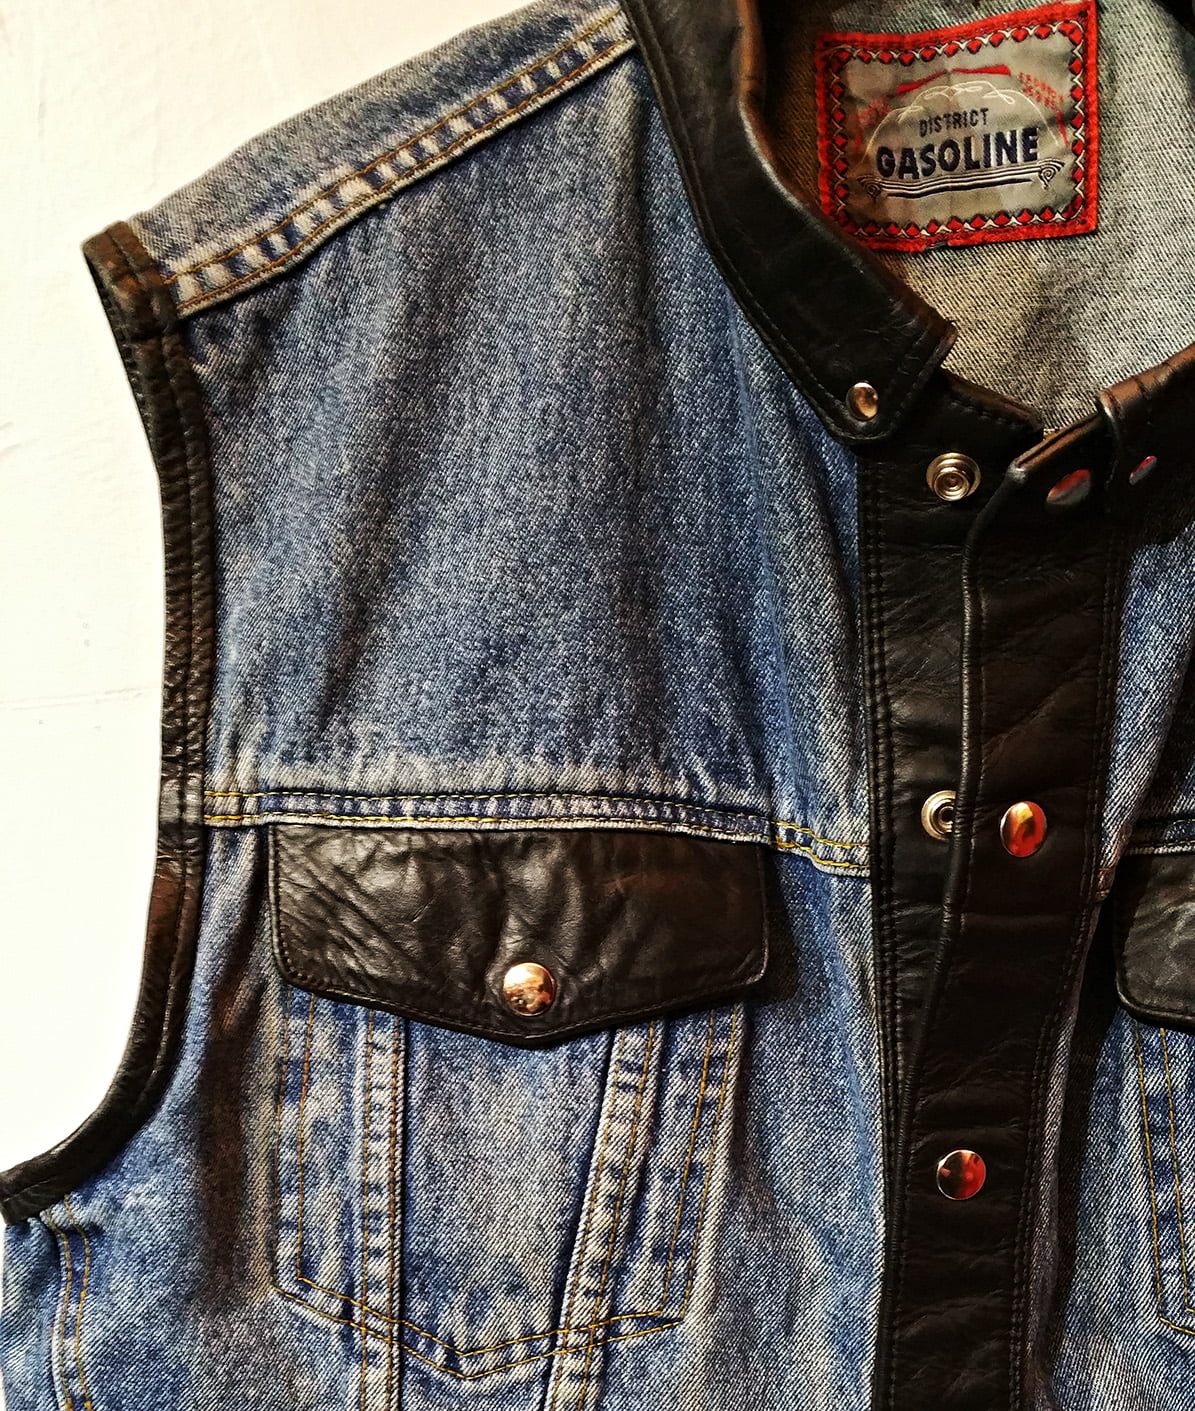 Gasoline Denim & Leather Vest with a theme song….